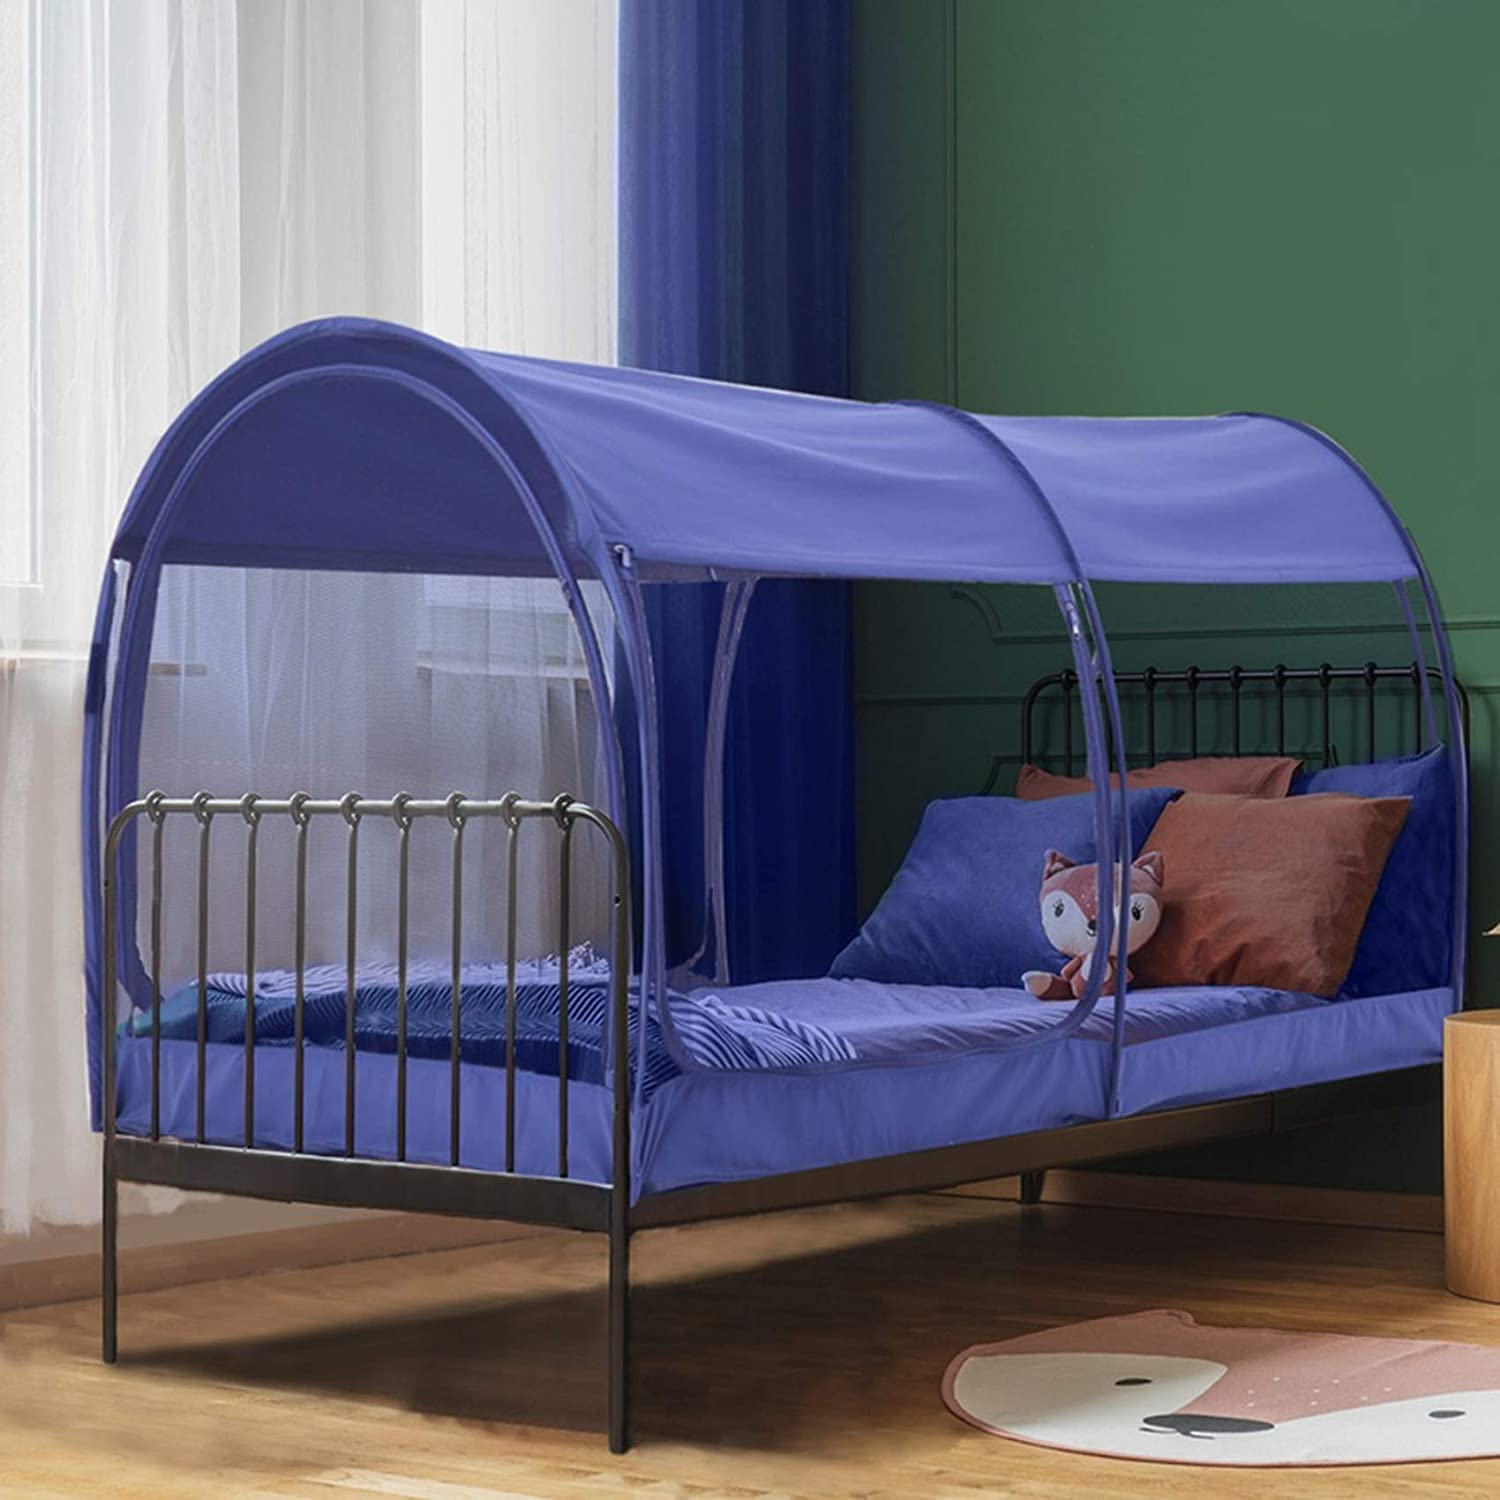 Amazon Com Leedor Mosquito Net Bed Tent Canopy Indoor Tent Privacy Bed Fort Dream Tent For Kids Or Adult Navy Twin 75 X 39 X 47h Mattress Not Included Home Kitchen